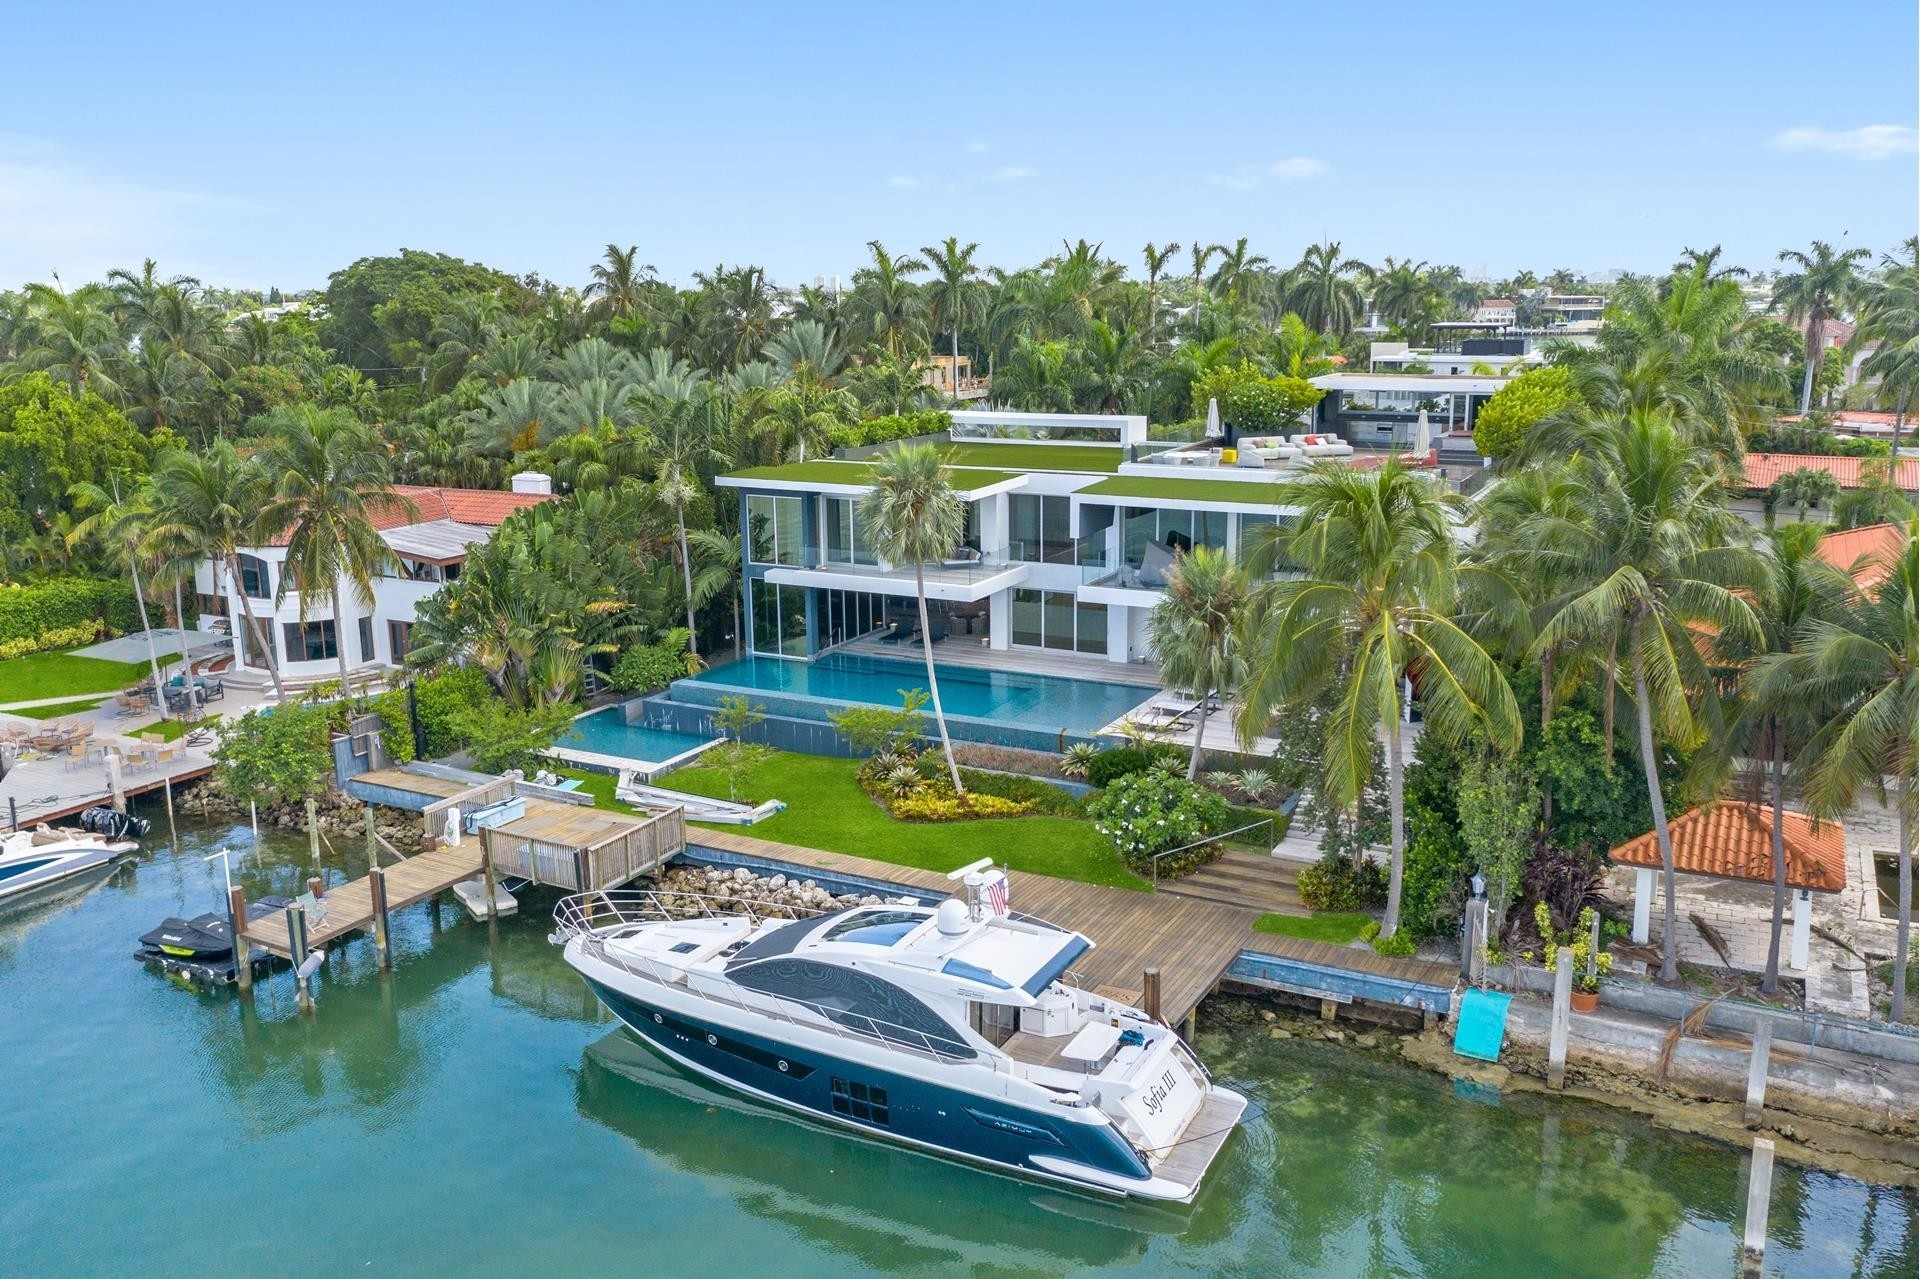 Single Family Home for Sale at Hibiscus Island, Miami Beach, FL 33139